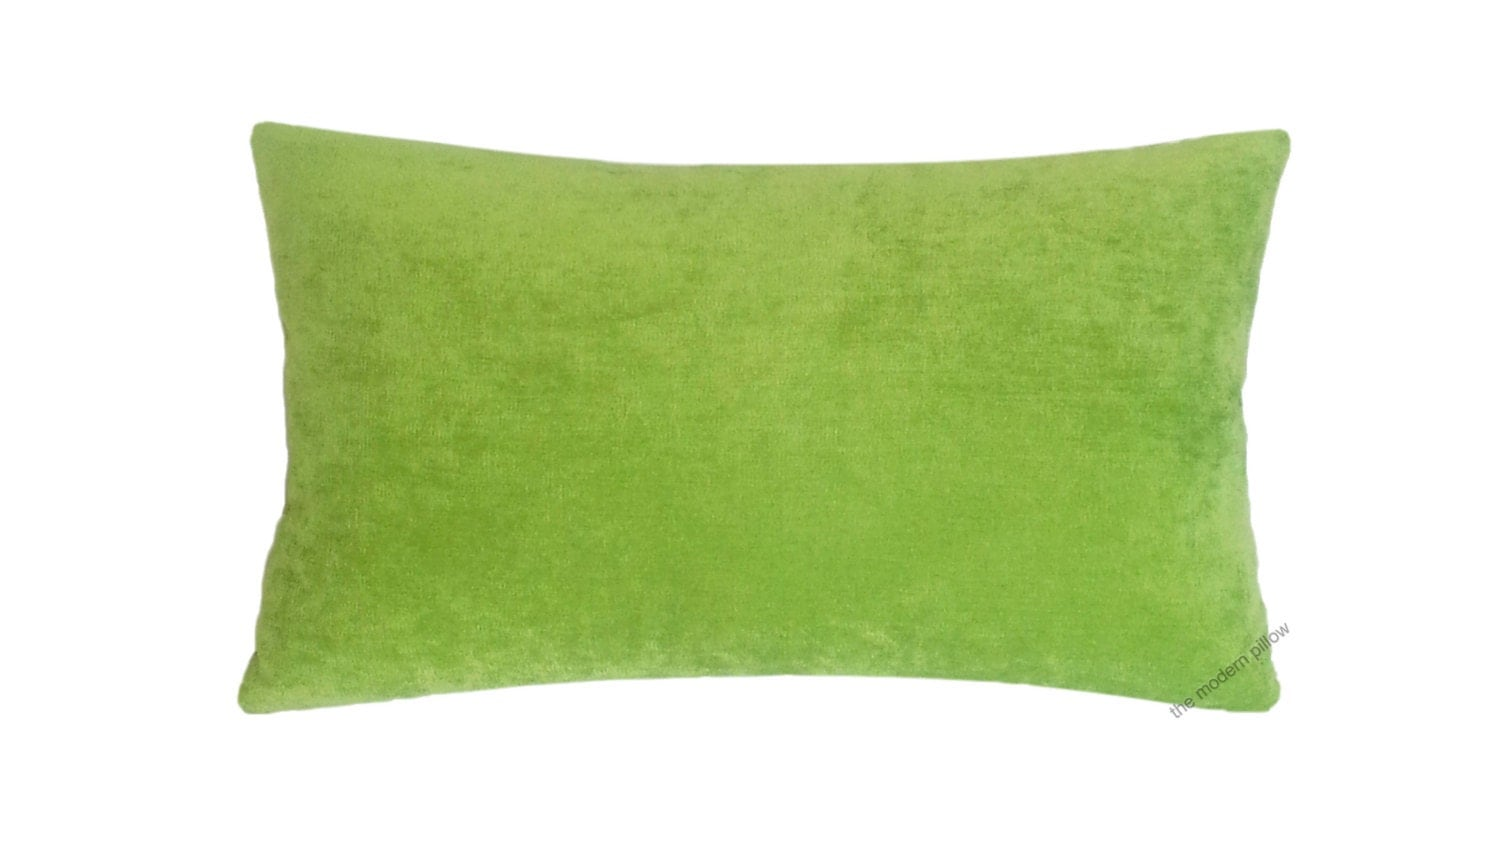 Lime Green Velvet Solid Decorative Throw Pillow by TheModernPillow